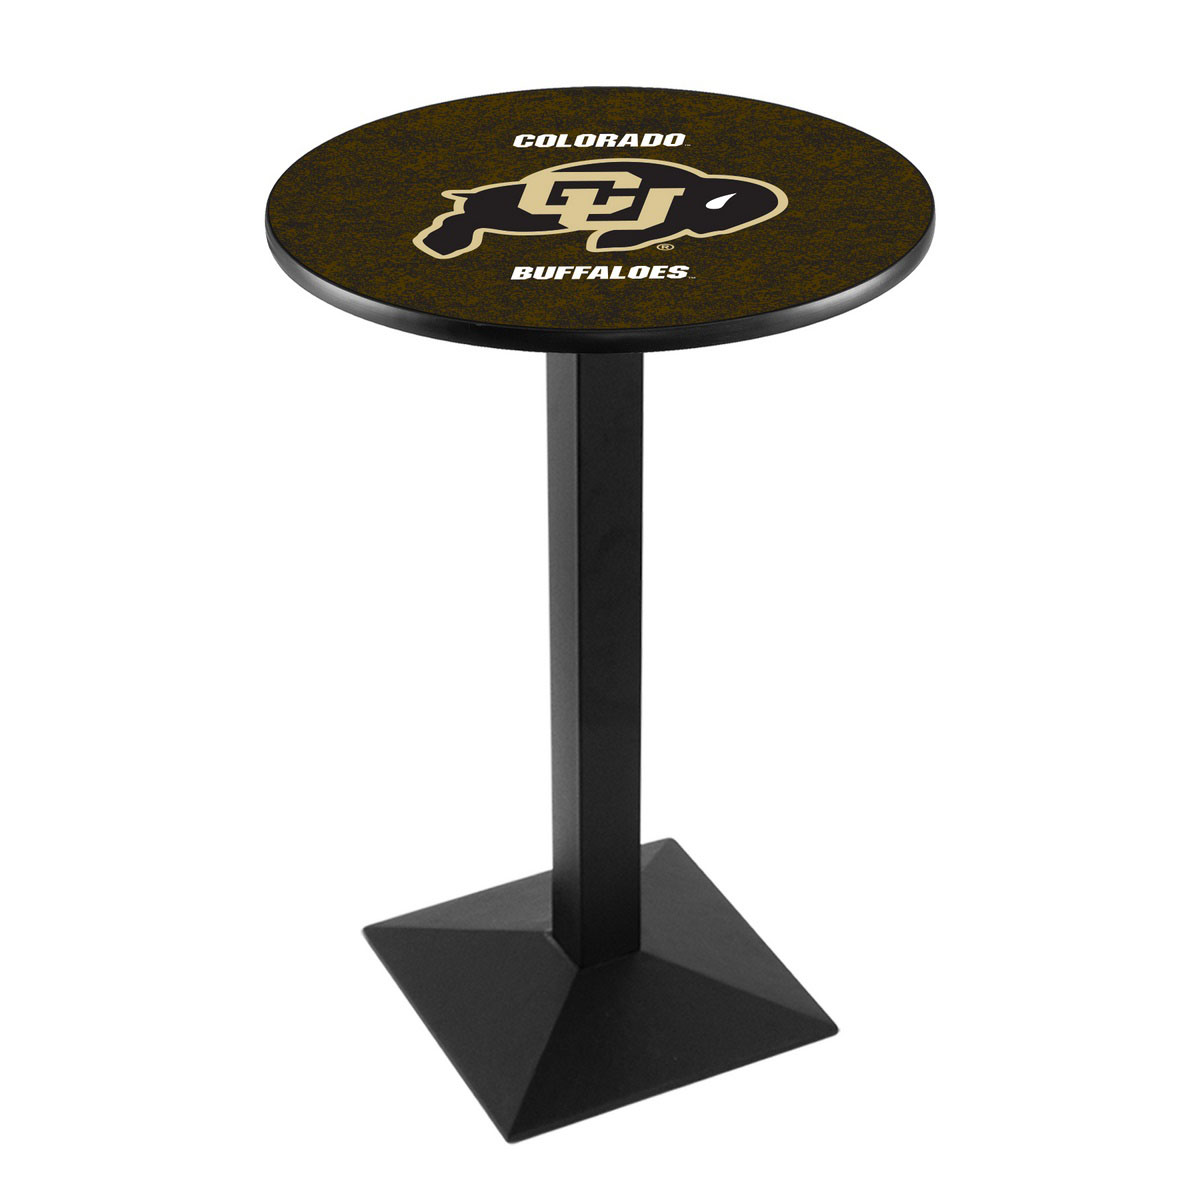 User friendly University Colorado Logo Pub Bar Table Square Stand Product Photo